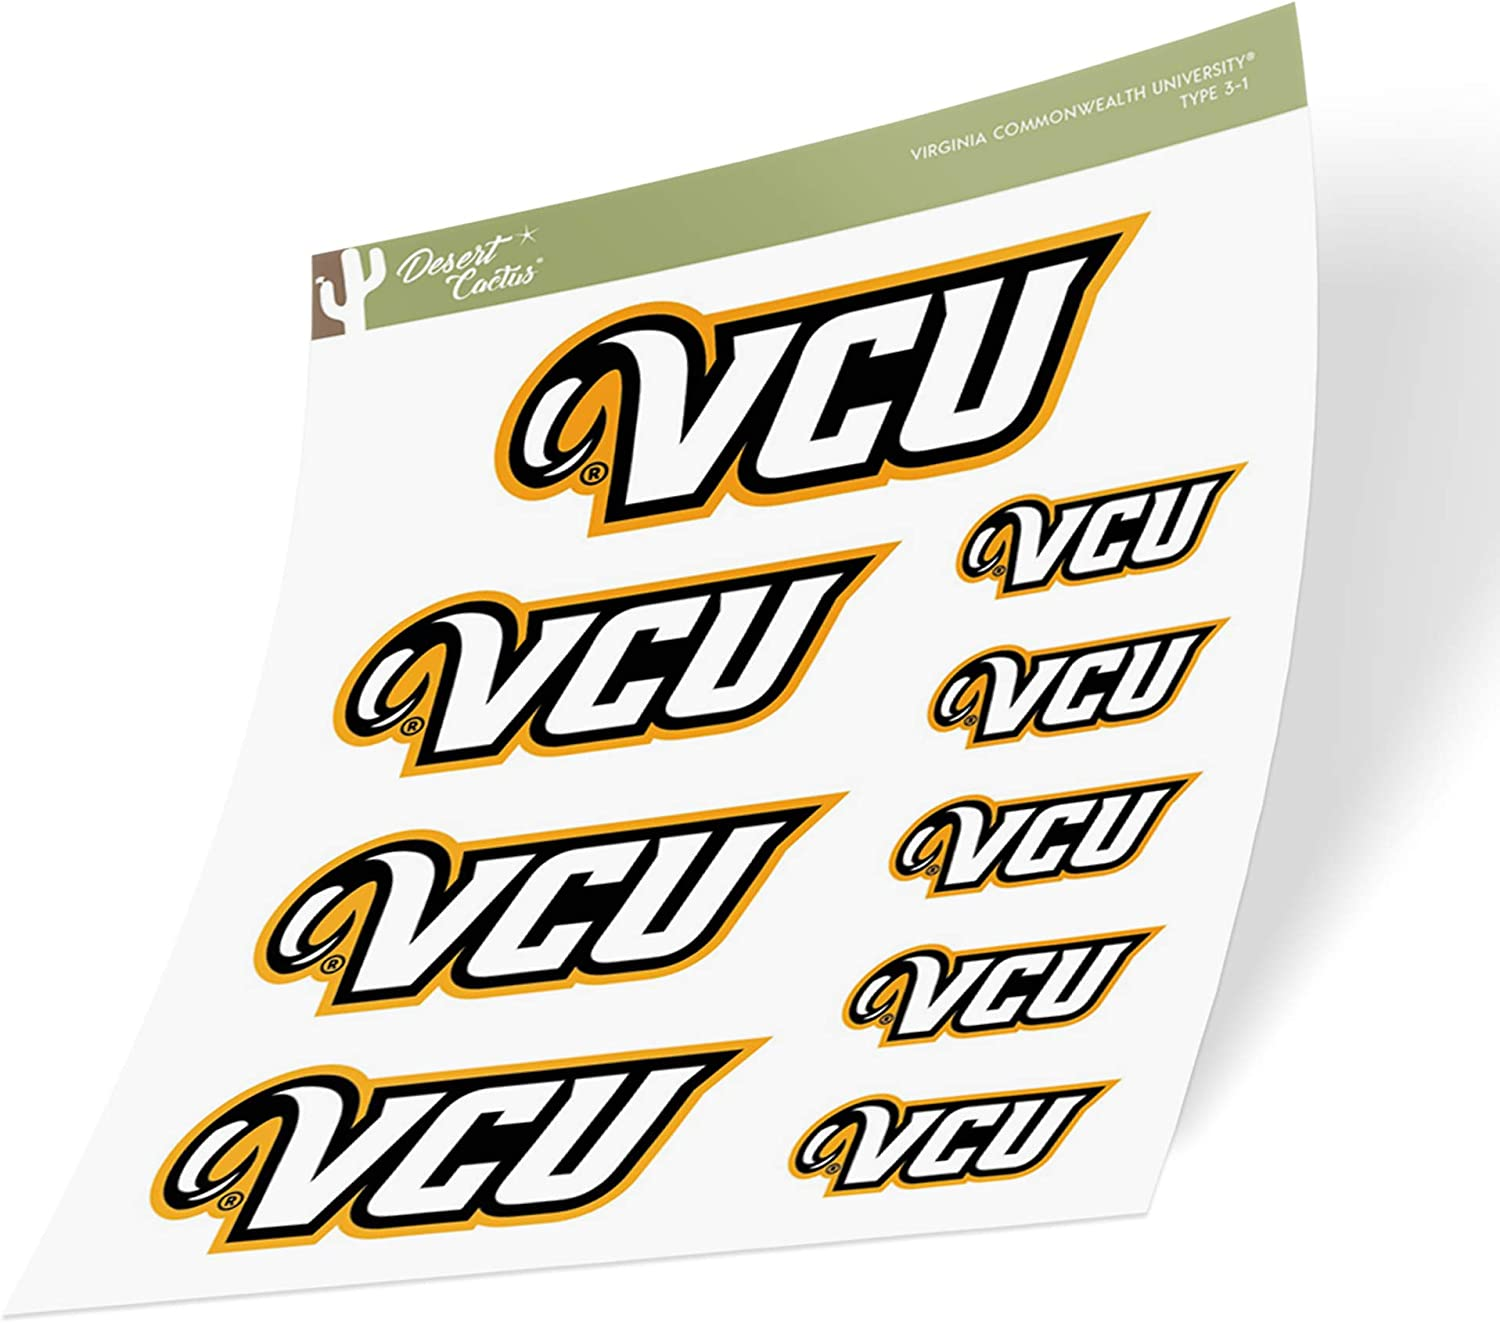 Virginia Commonwealth University VCU Rams NCAA Sticker Vinyl Decal Laptop Water Bottle Car Scrapbook (Sheet Type 3-1)